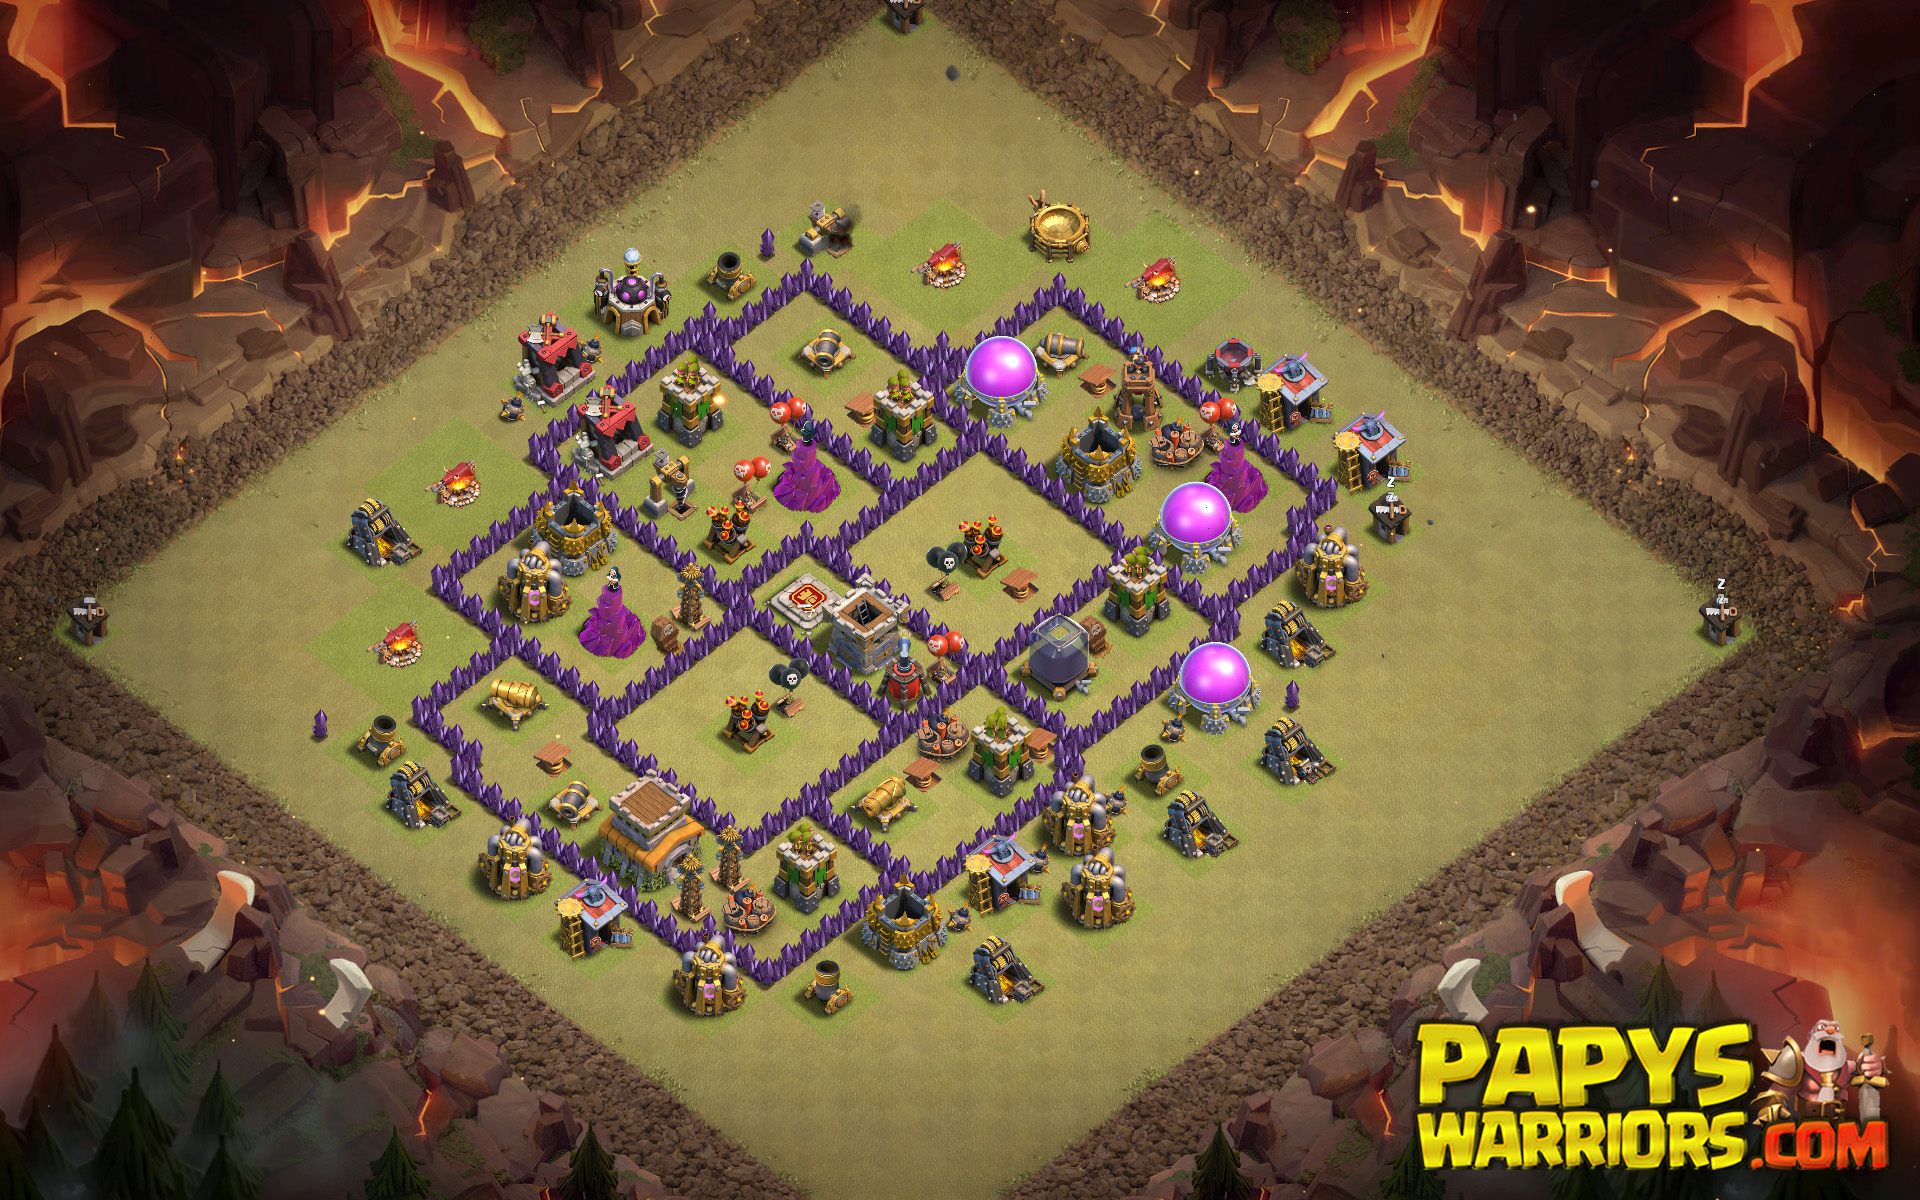 WAR BASE TH8 PAPYS WARRIORS 3